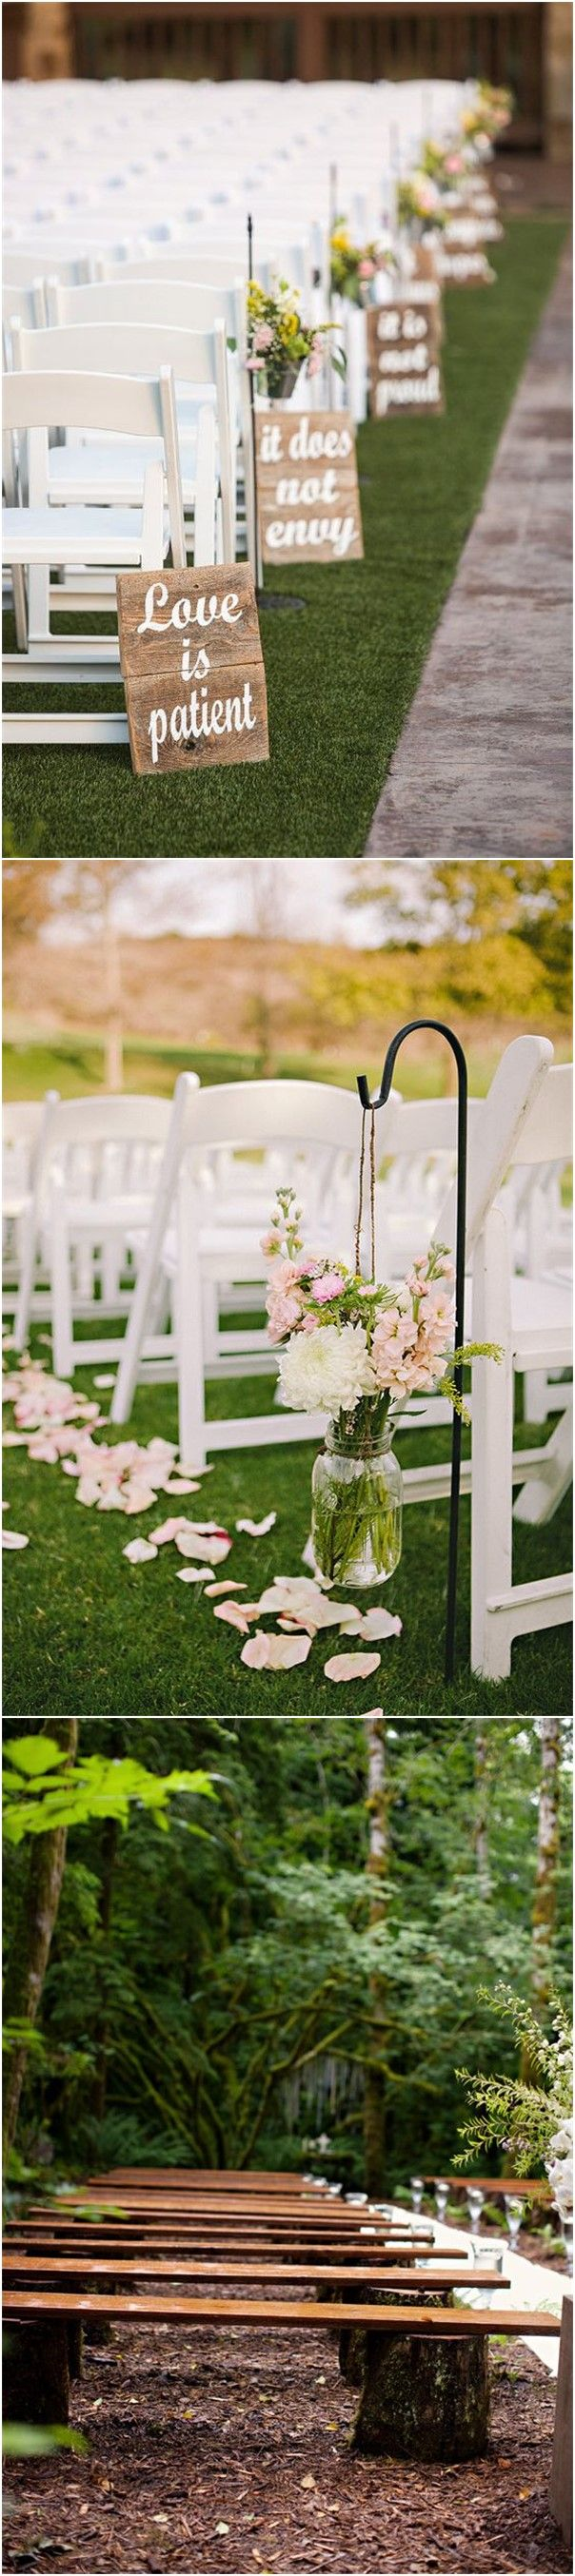 Best 20 outdoor weddings ideas on pinterest tent for Backyard wedding ceremony decoration ideas